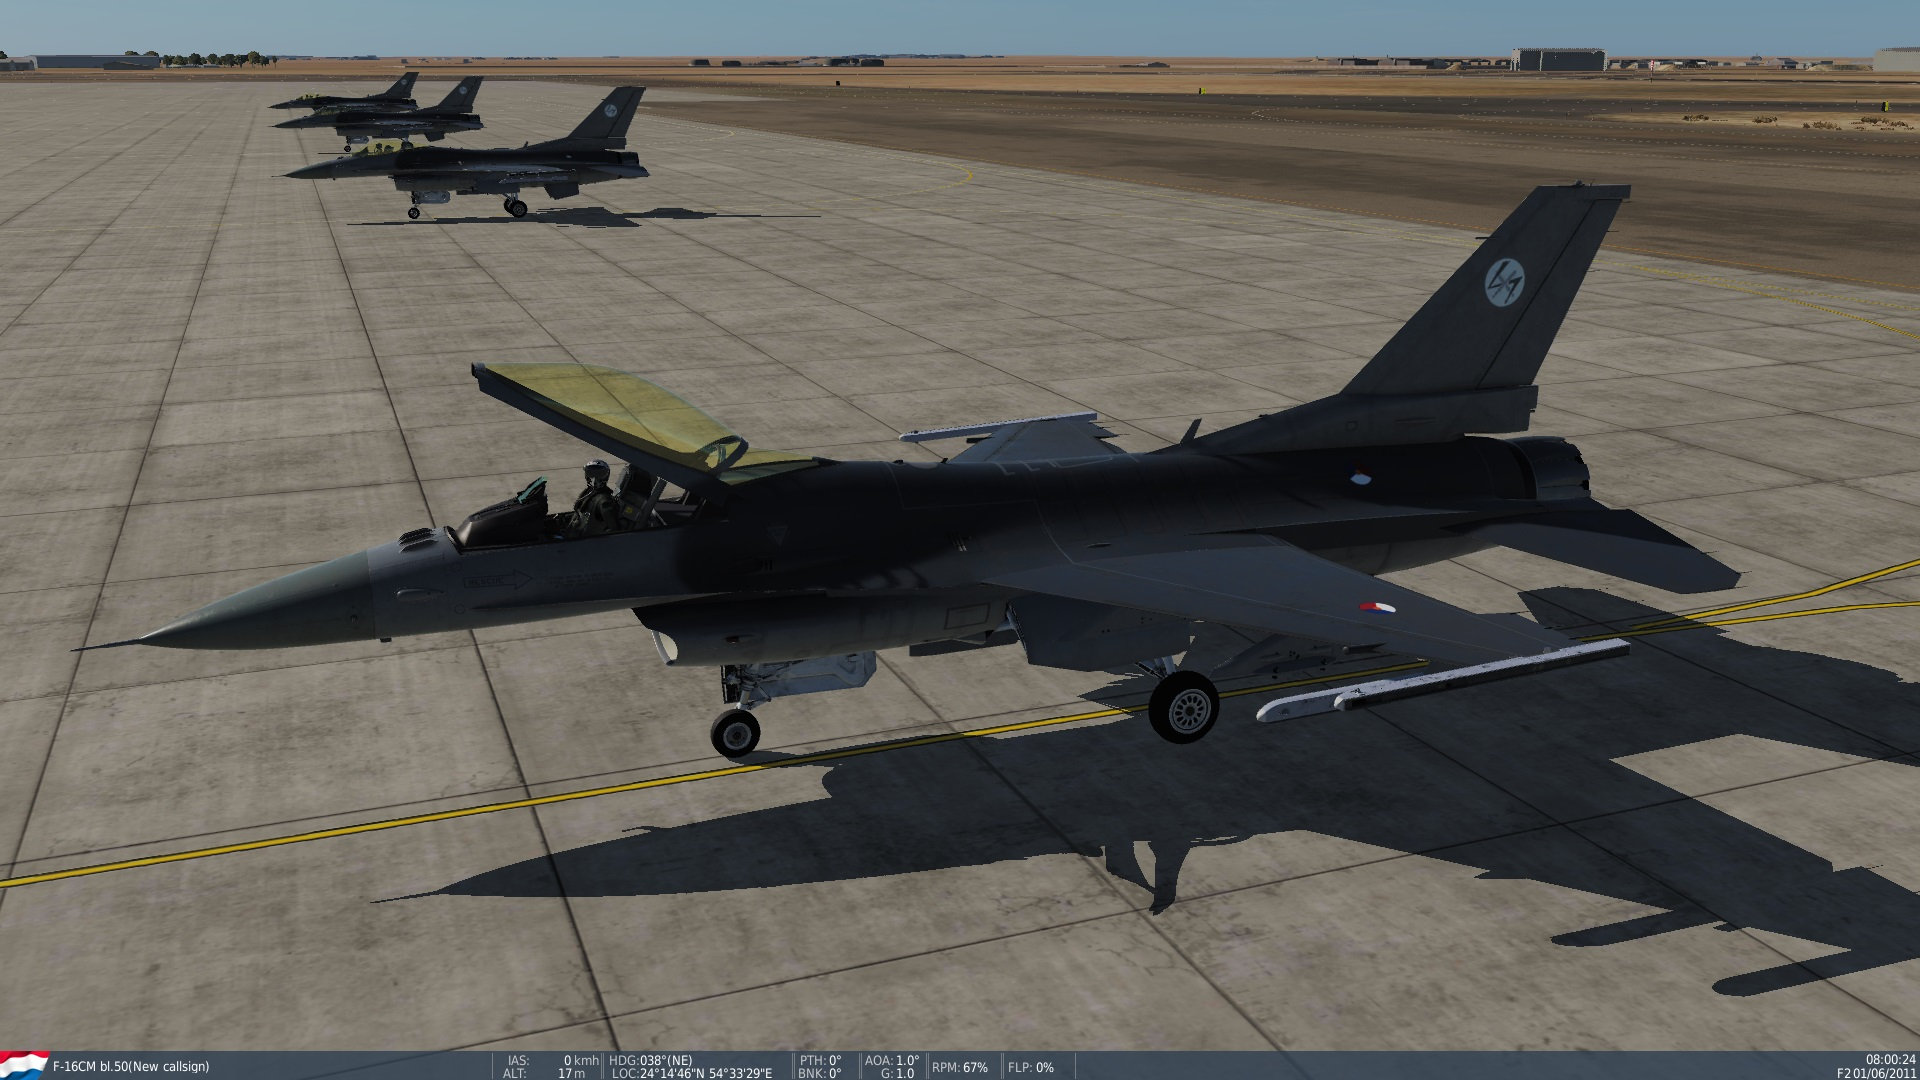 F-16CM Block 50 Royal Netherlands Air Force/Koninklijke Luchtmacht skin without tailnumber, feel free to add one.